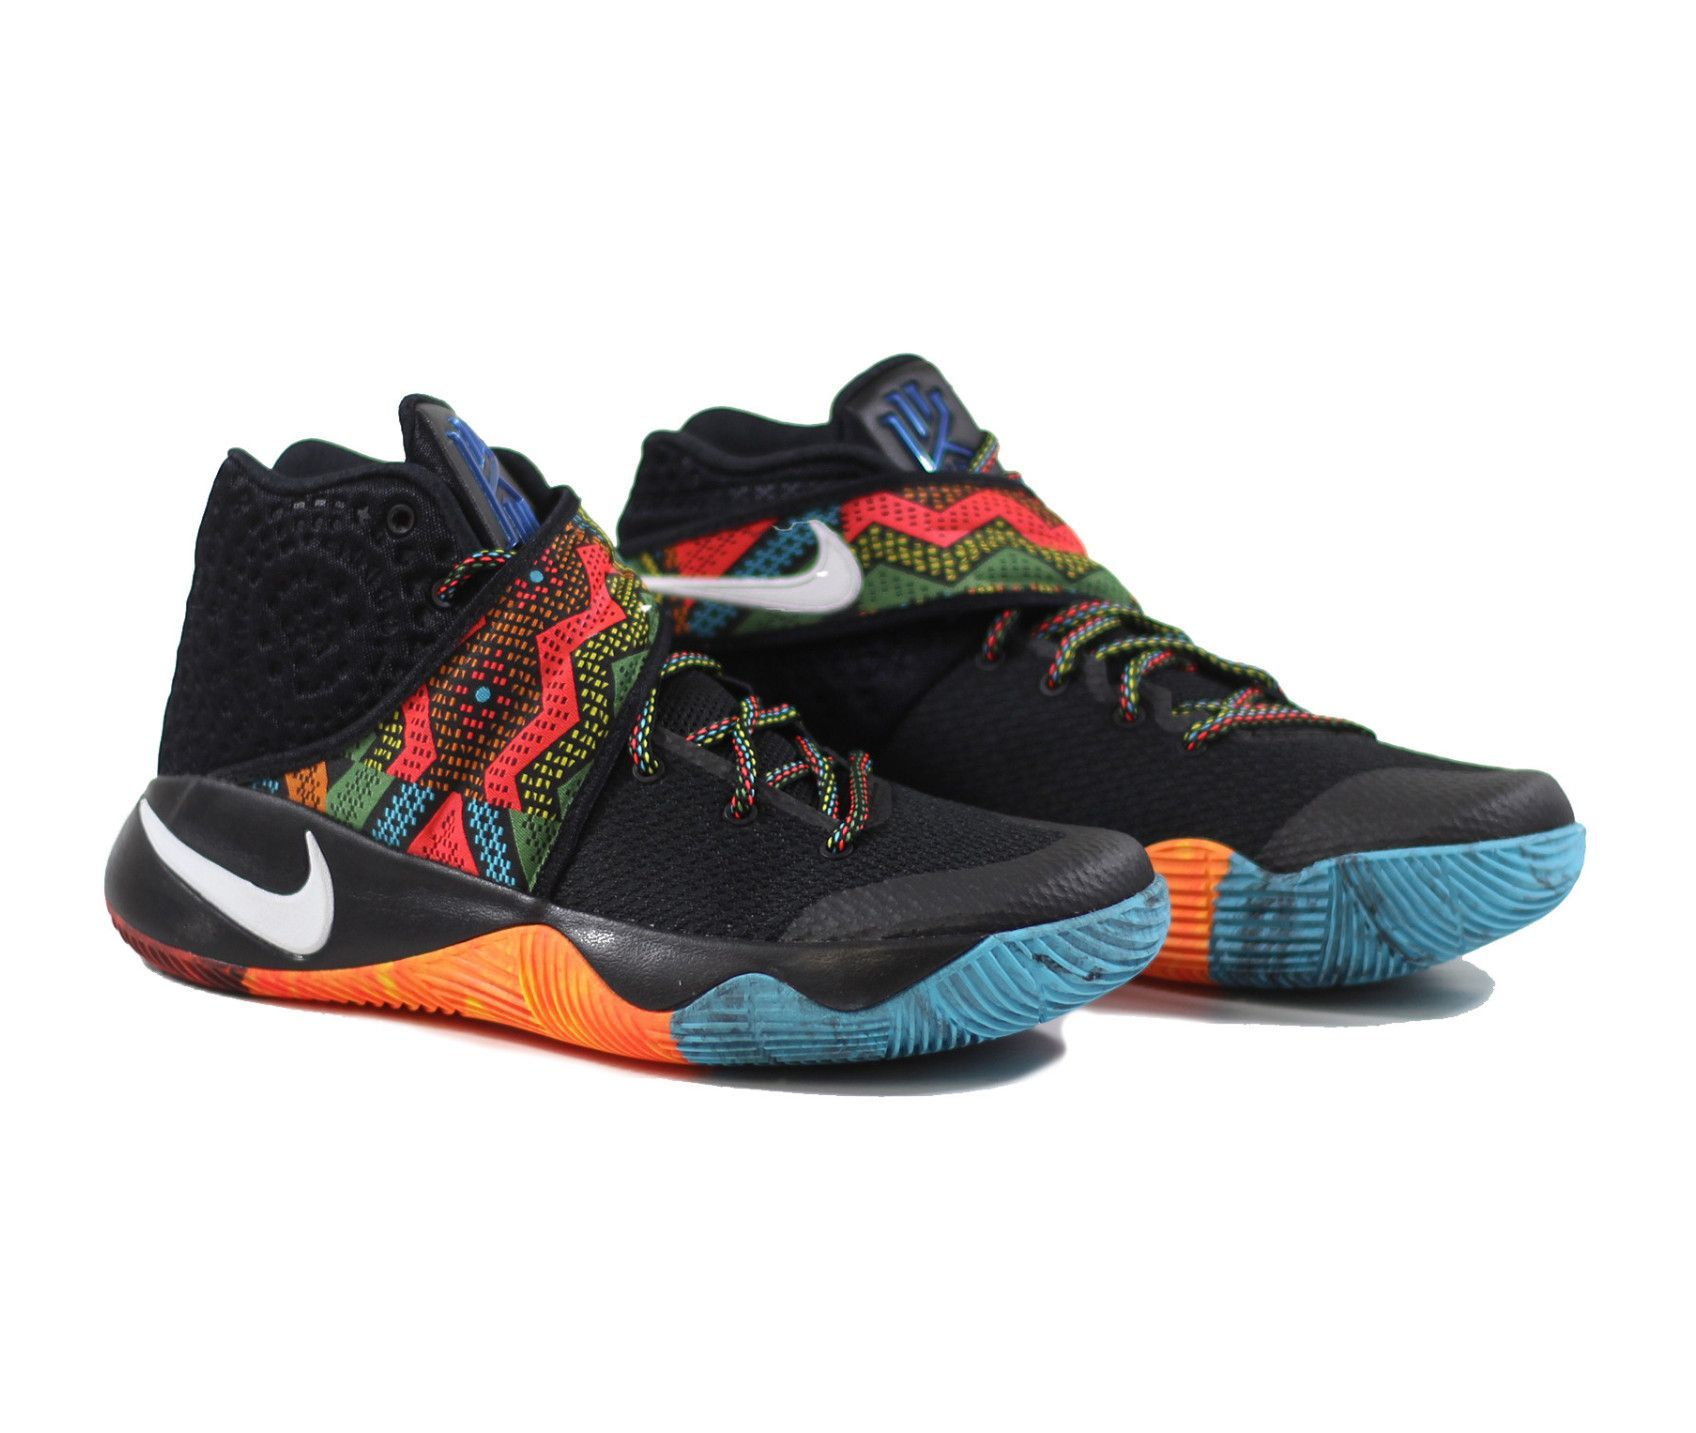 size 40 b9b64 b5f3d Kyrie 2 BHM - Black/Multi-Color-Multi Color | Products ...